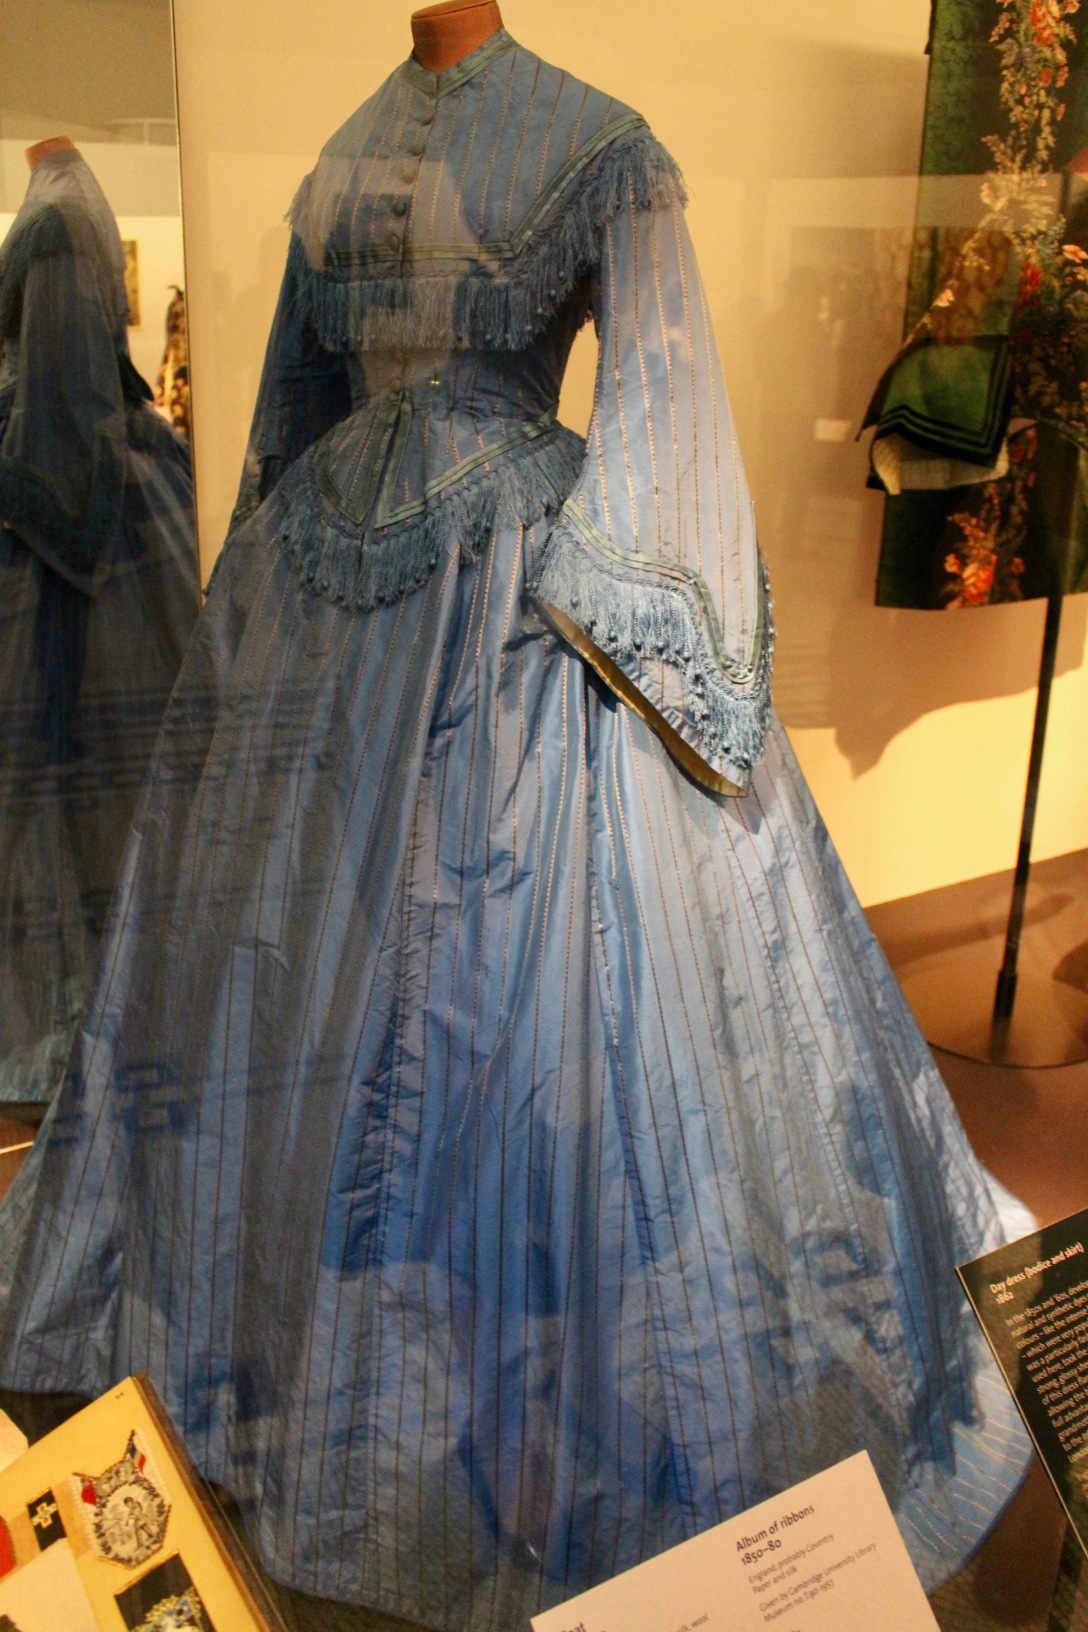 Victoria And Albert Museum Fashion Rooms And Analysis Of Dress D E S I G N O R I G I N S